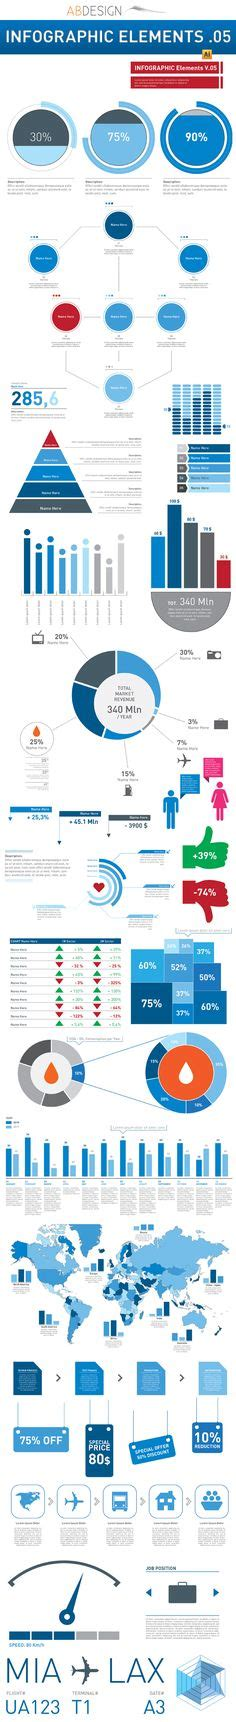 Adobe Indesign On Pinterest Infographic Annual Reports And Templates Infographic Indesign Template